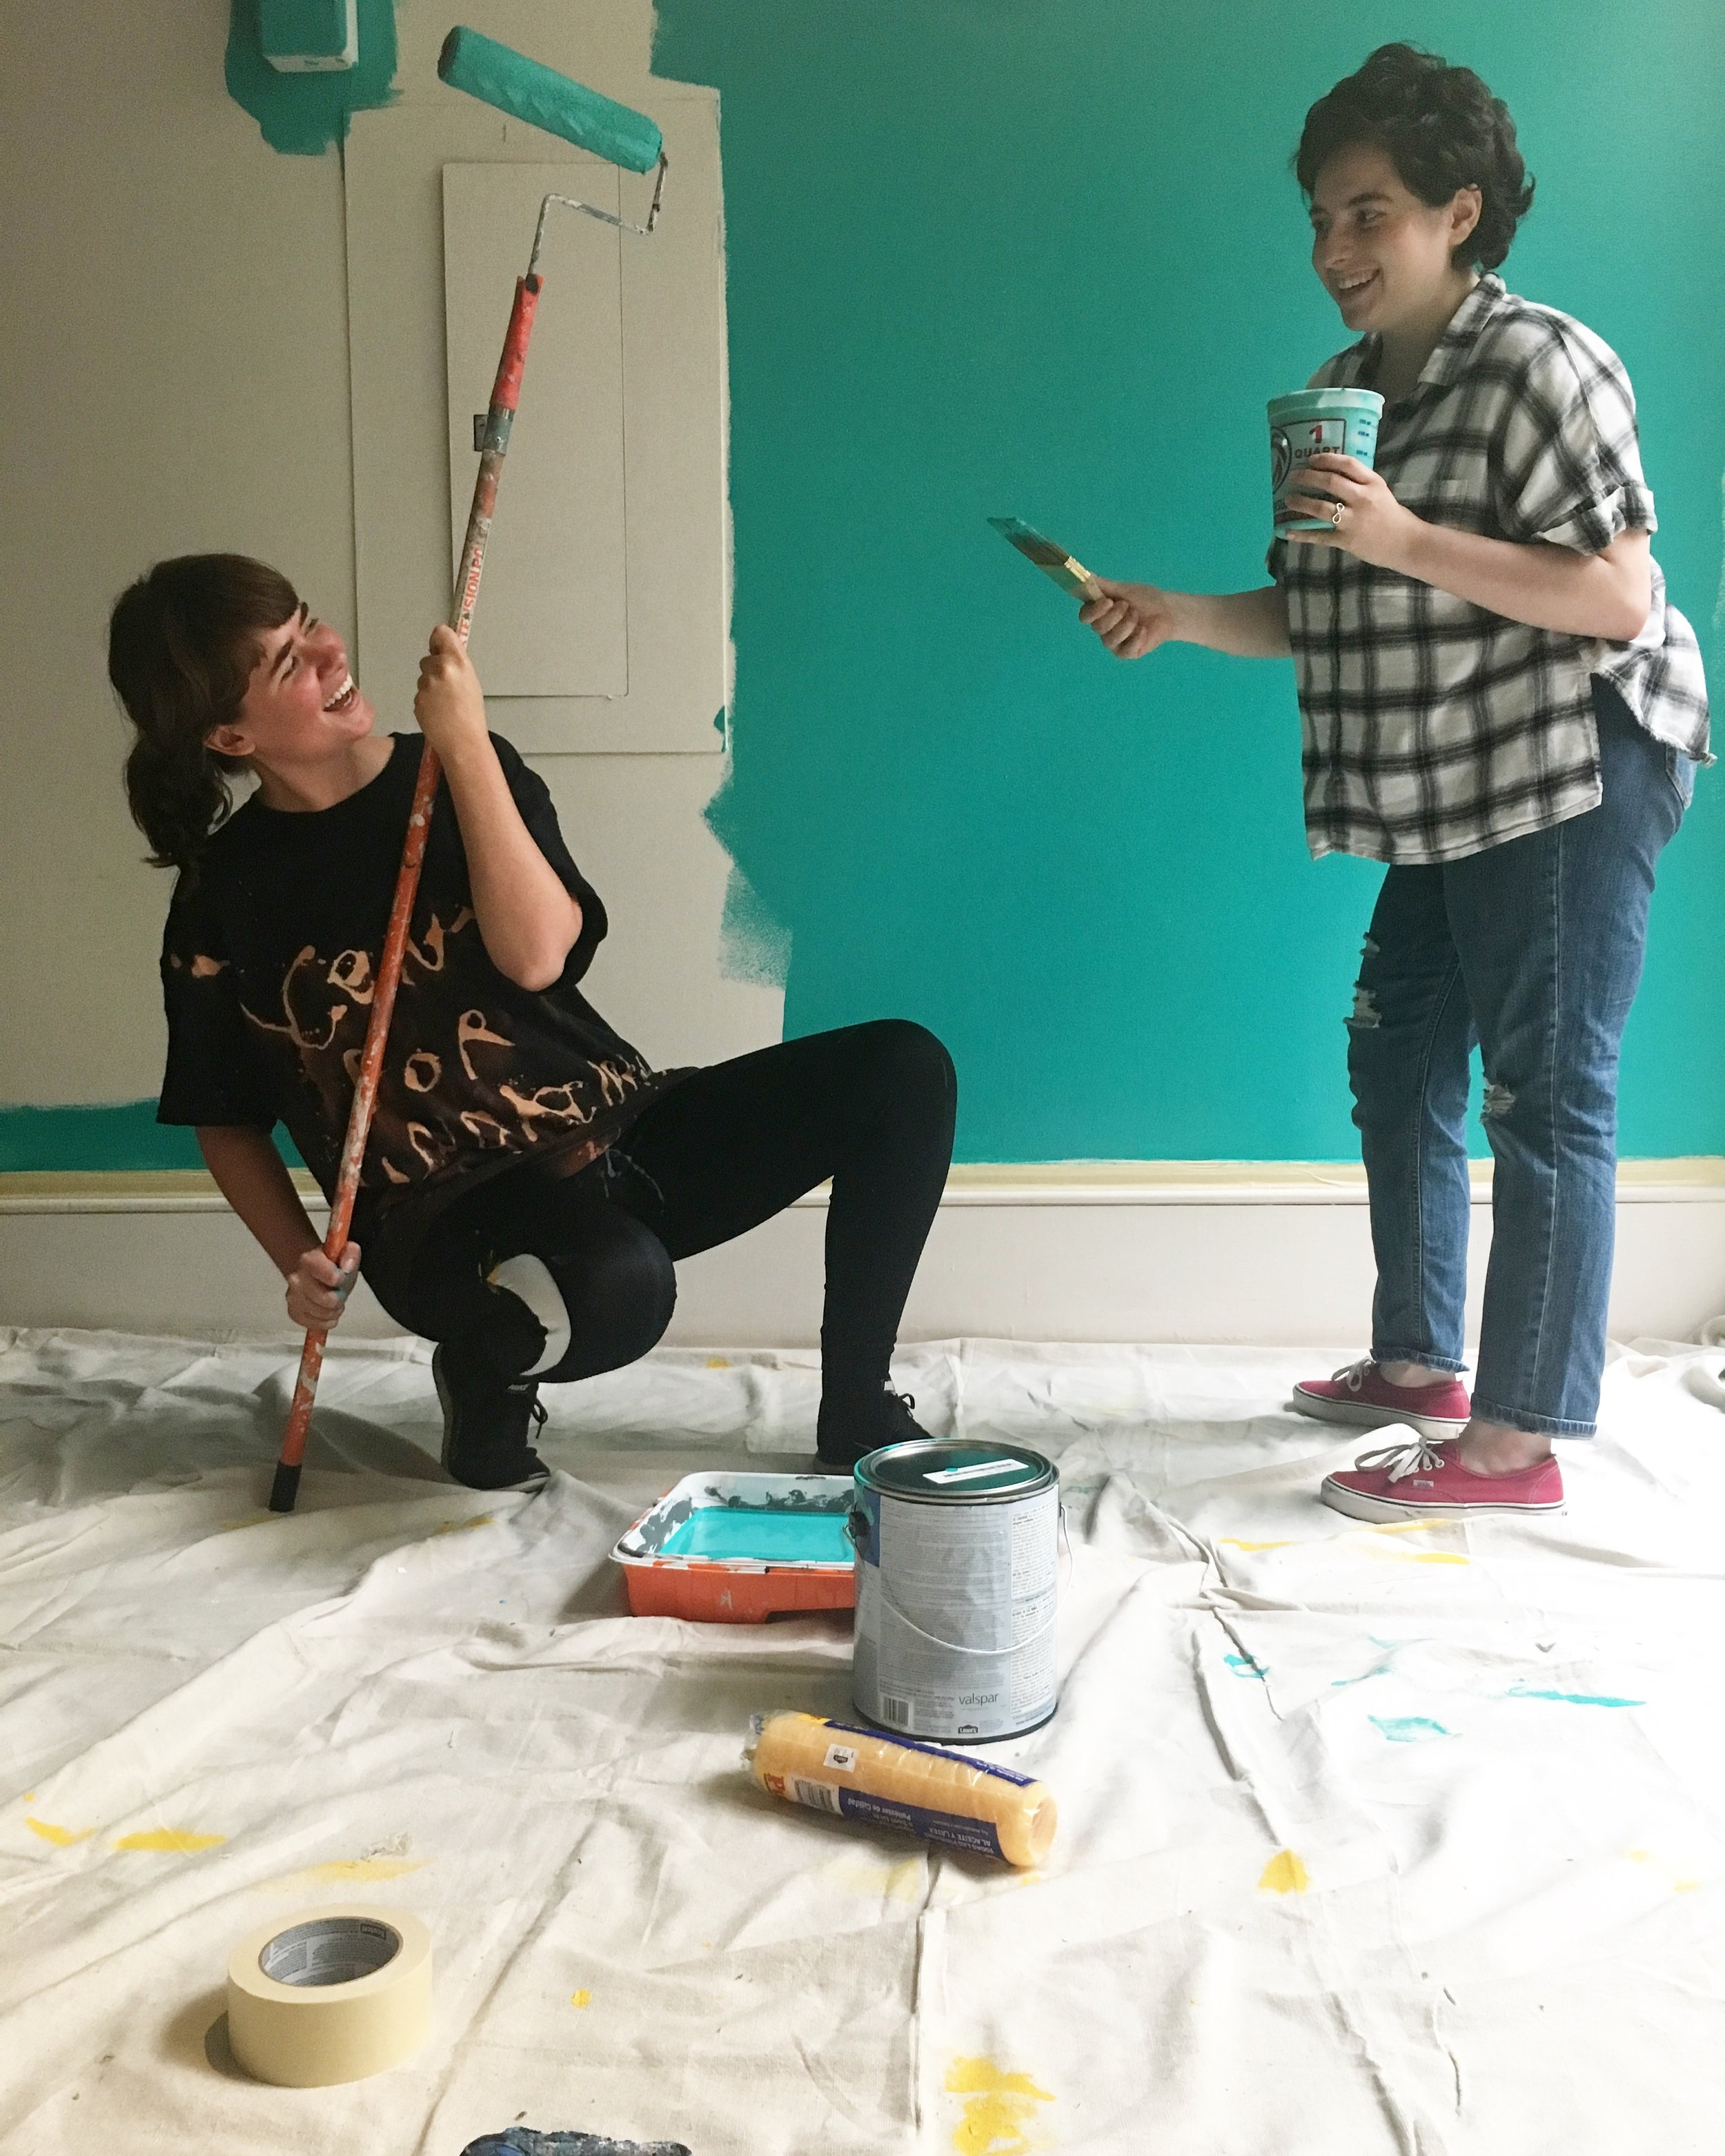 We finally painted our wall at the New Bedford Art Museum! Here's Holly Podesta, Naturalist and Interspecies Communication Officer, and I painted the wall aqua. Thanks for the photo, Jamie Uretsky!